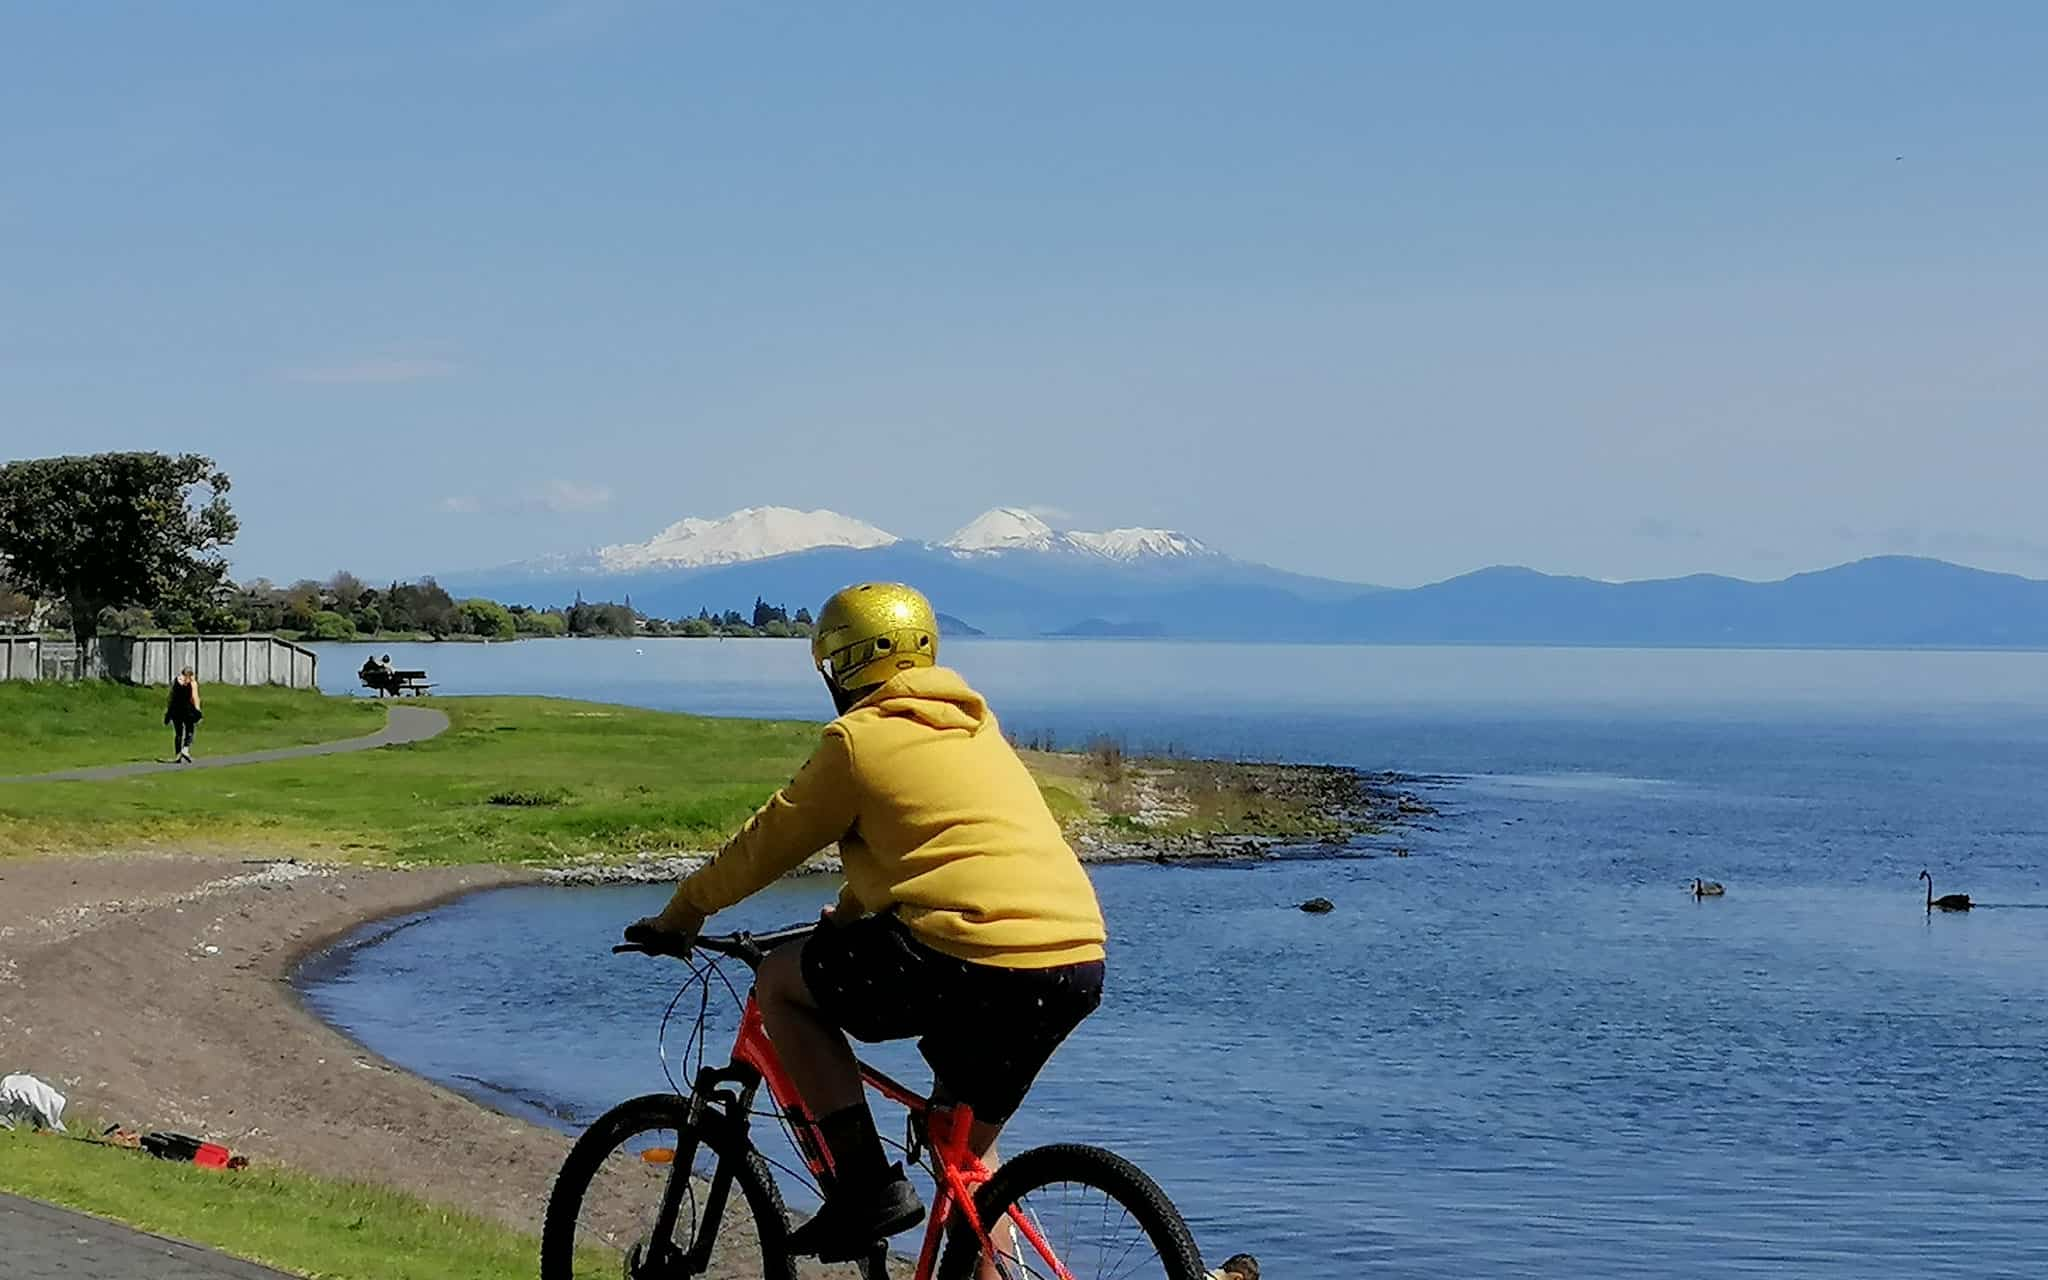 Stay-in-Taupo-Accommodation-Bed-and-Breakfast-in-Taupo-Waikato-New-Zealand-11